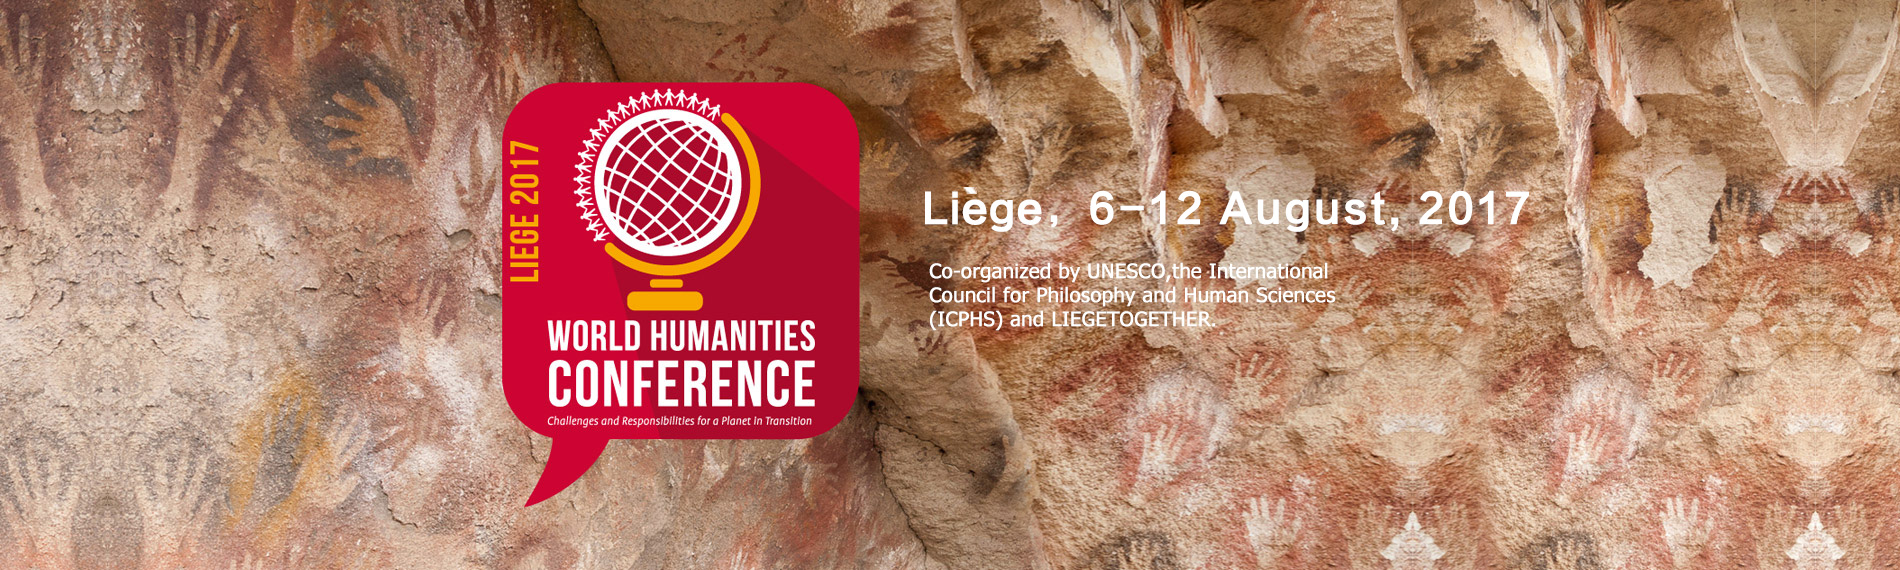 Conférence mondiale des humanités http://www.humanities2017.org